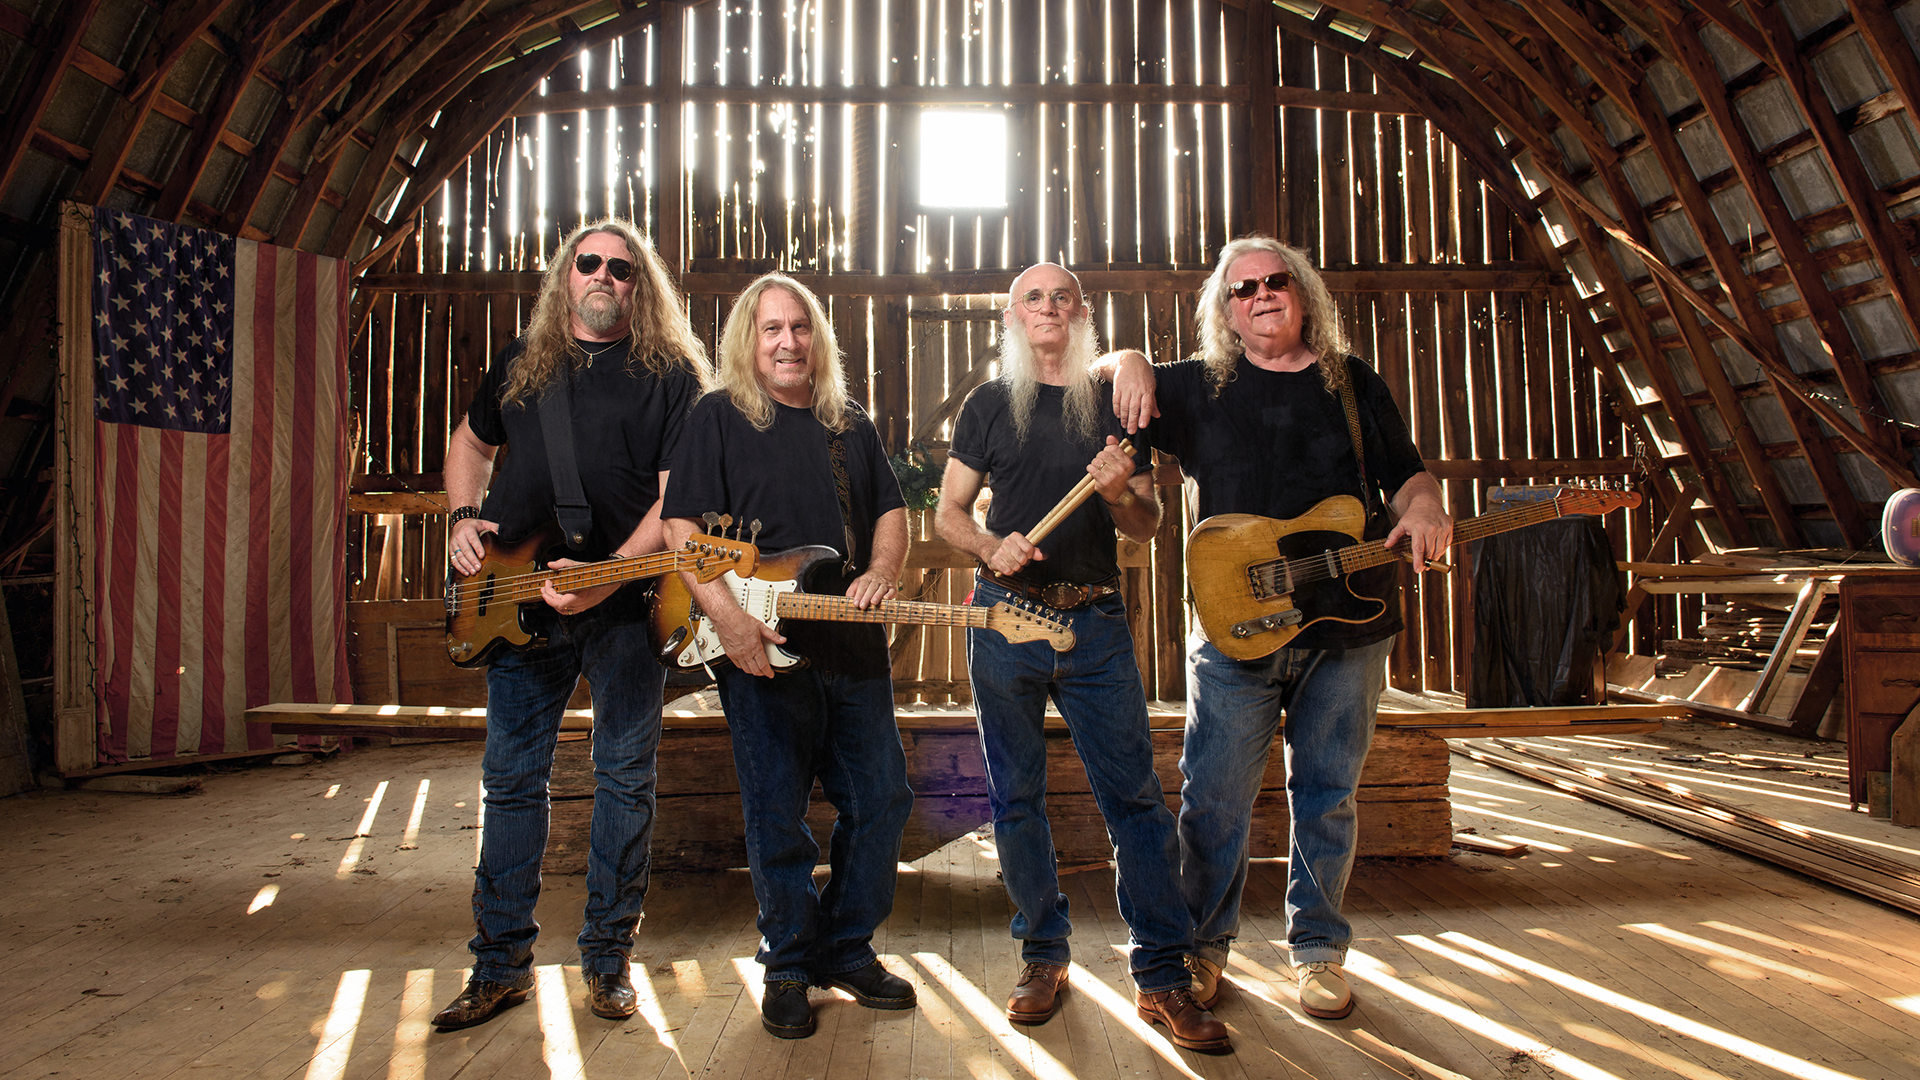 Ink Life tour returns with ink slingers and Kentucky Headhunters